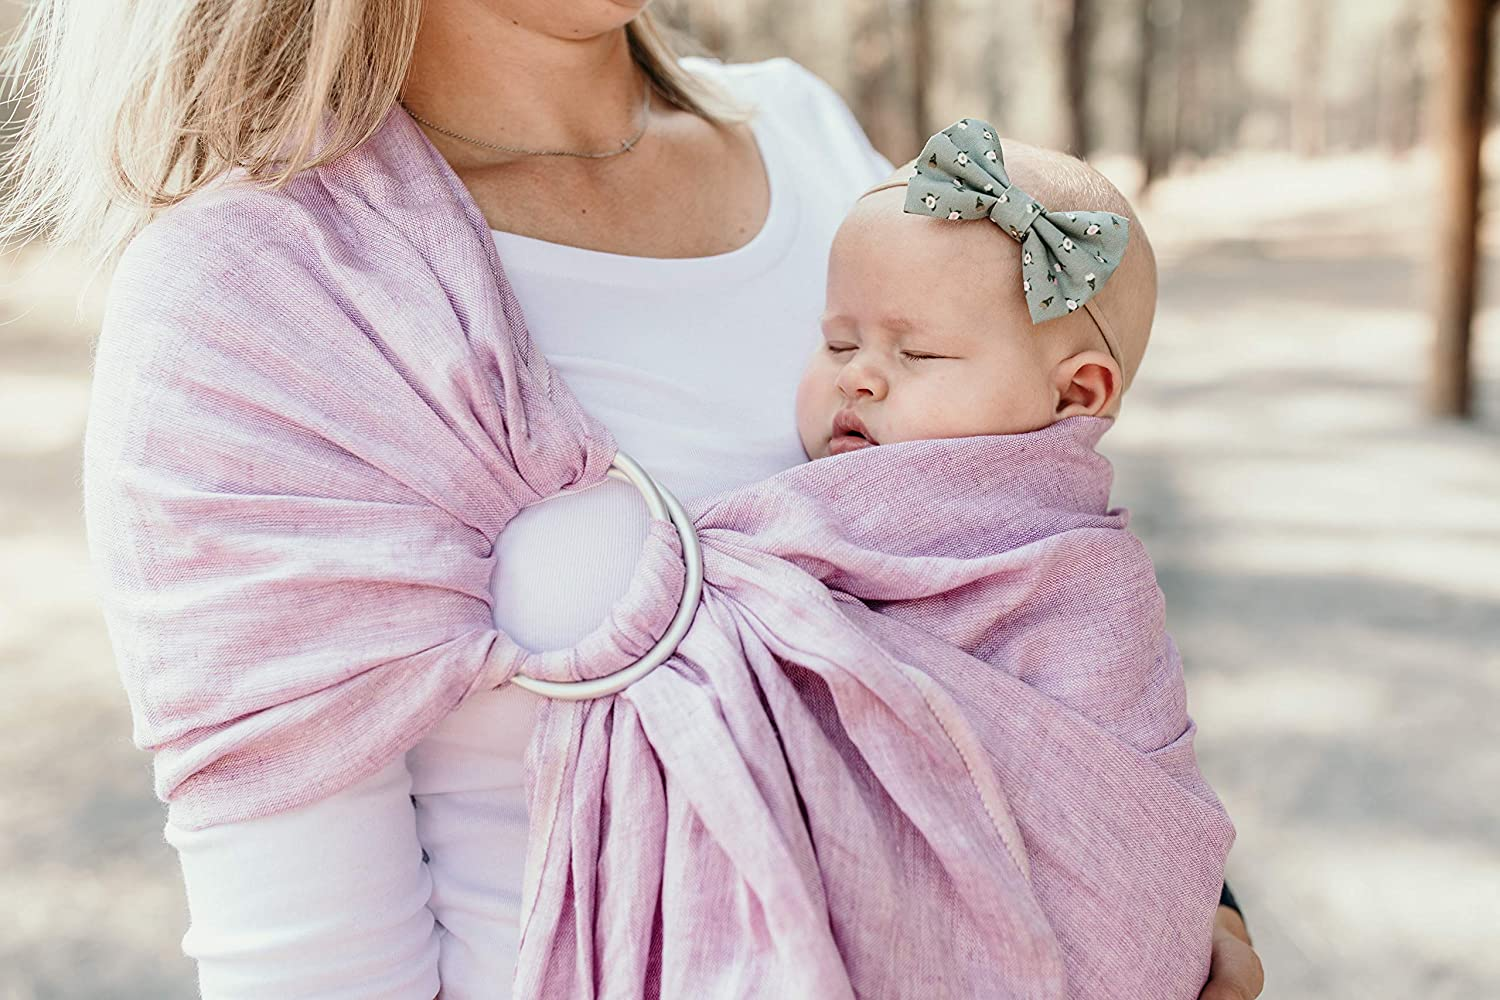 Infants and Toddlers Perfect Baby Show Gift Nursing Cover Baby Carrier Ring Sling by Hip Baby Wrap for Newborns Oat - eco-Friendly Beautiful 100/% Linen Great for New mom and dad